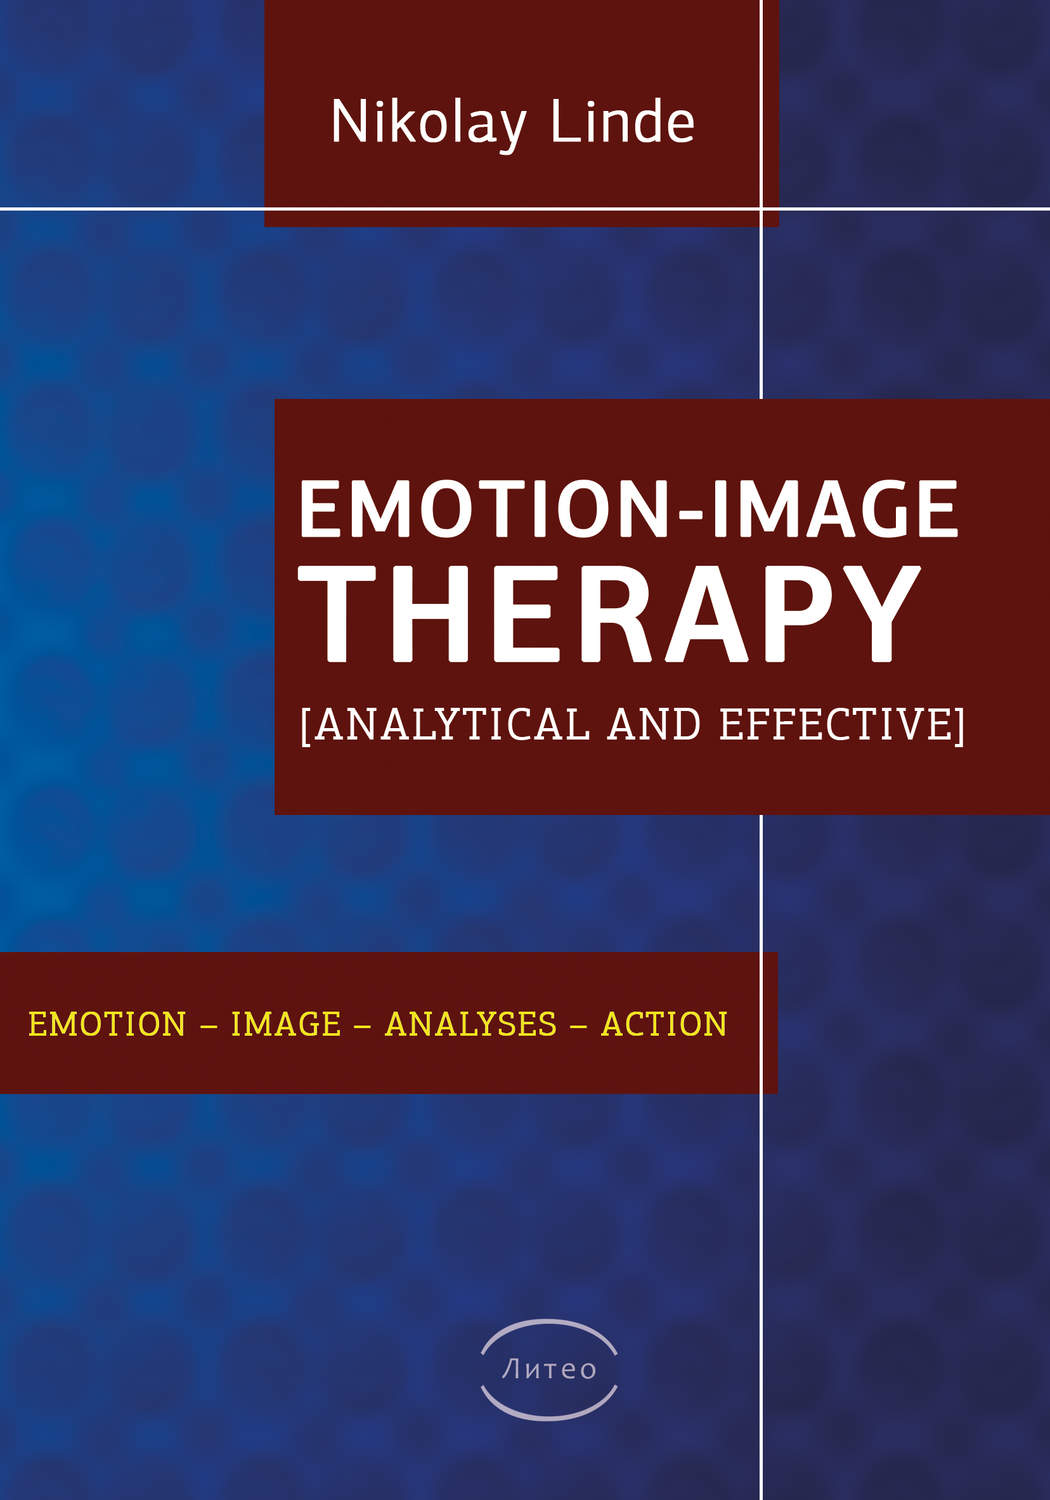 analysis emotion and jon Brief summary of mindfulness research difference in neural functions related to emotion in expert meditators and novice devised by jon kabat-zinn, is.